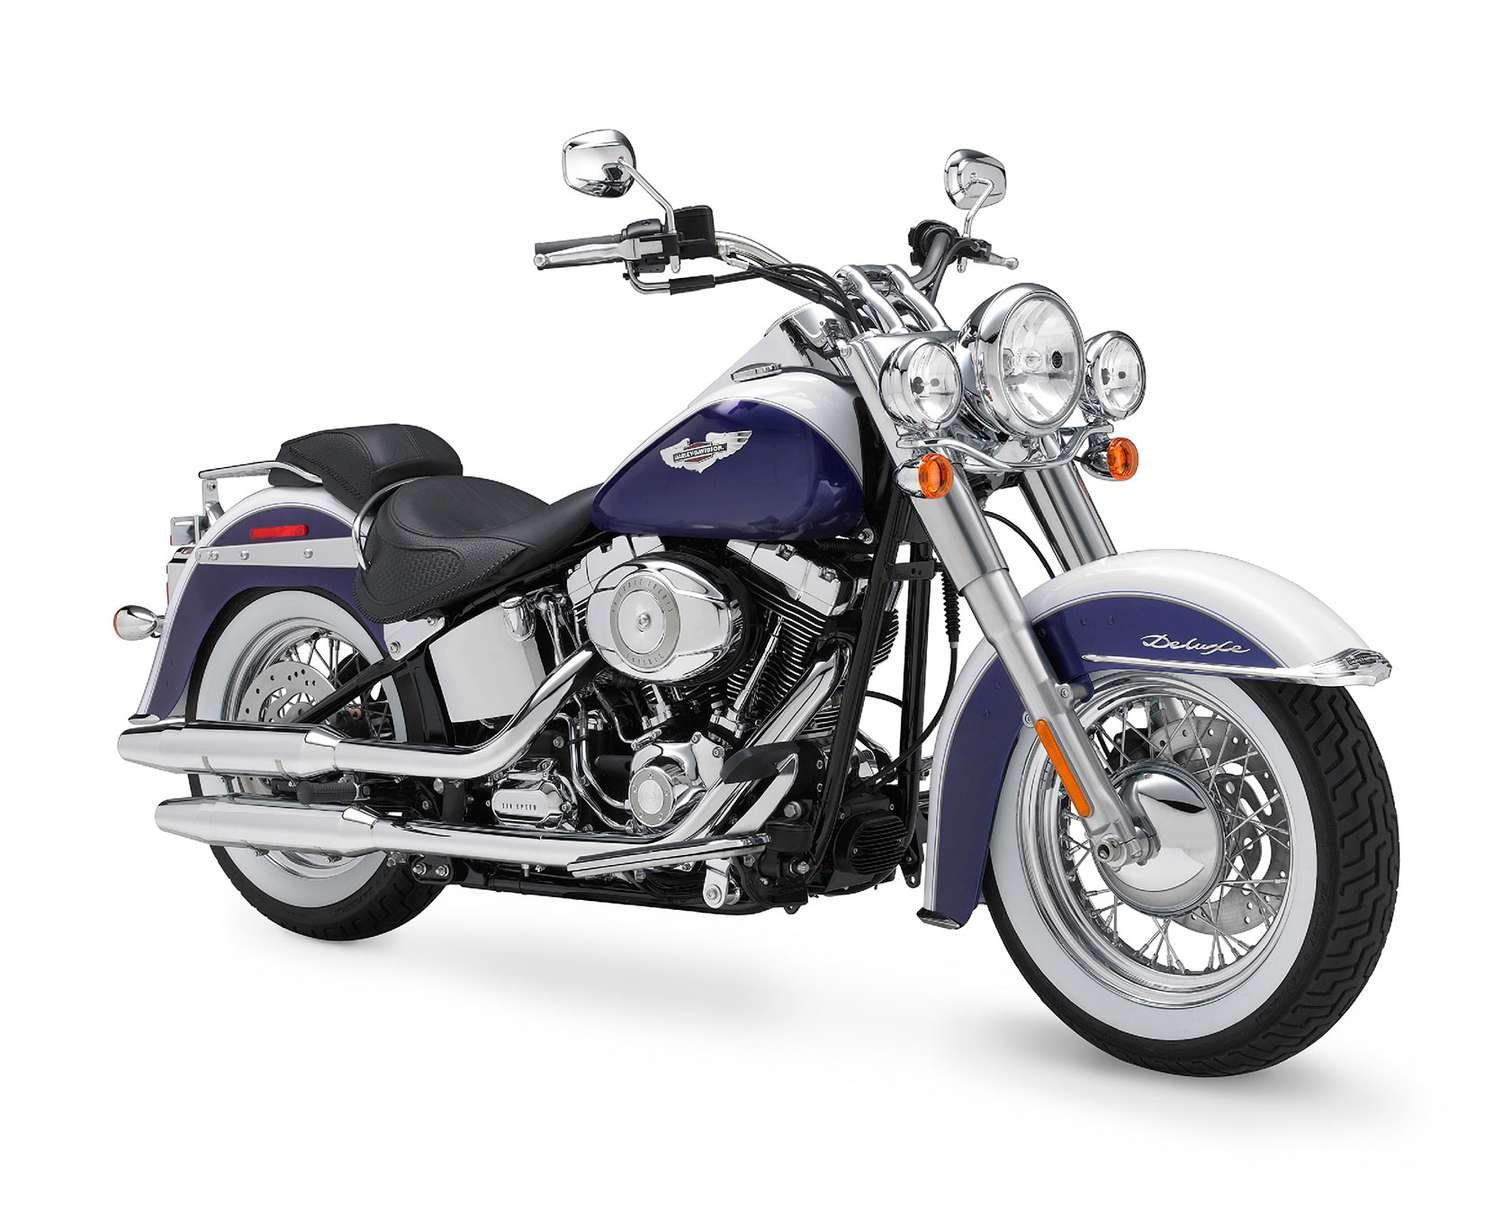 Harley-Davidson Softail Deluxe #7658582